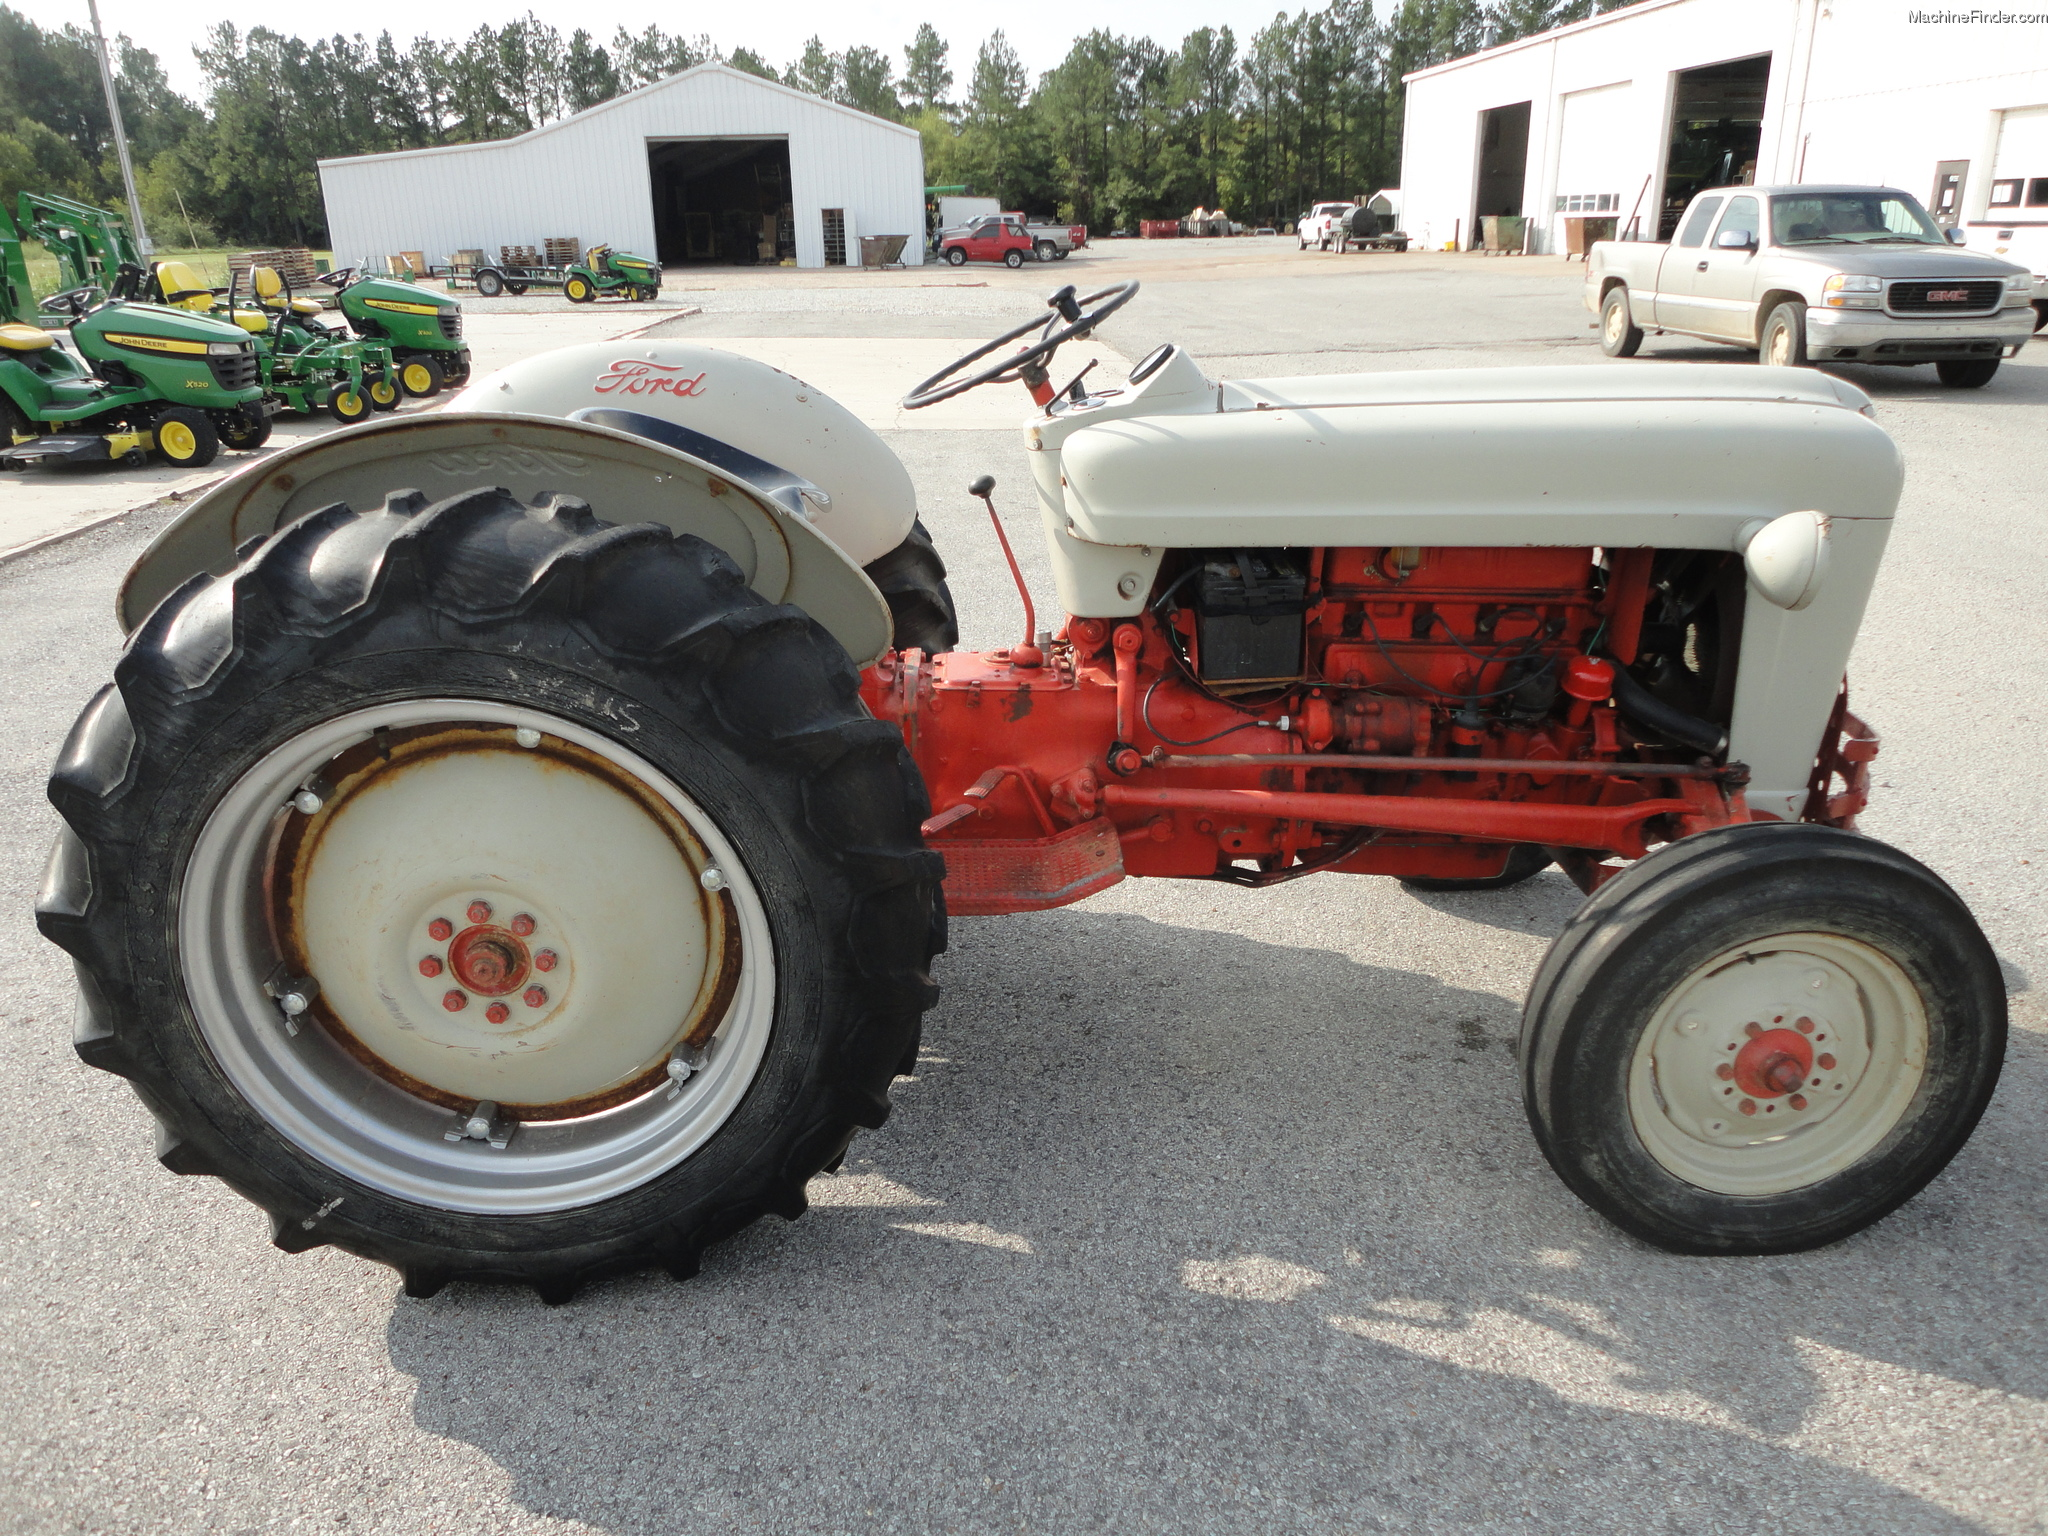 Ford Jubilee Parts : Ford jubilee tractor serial number location get